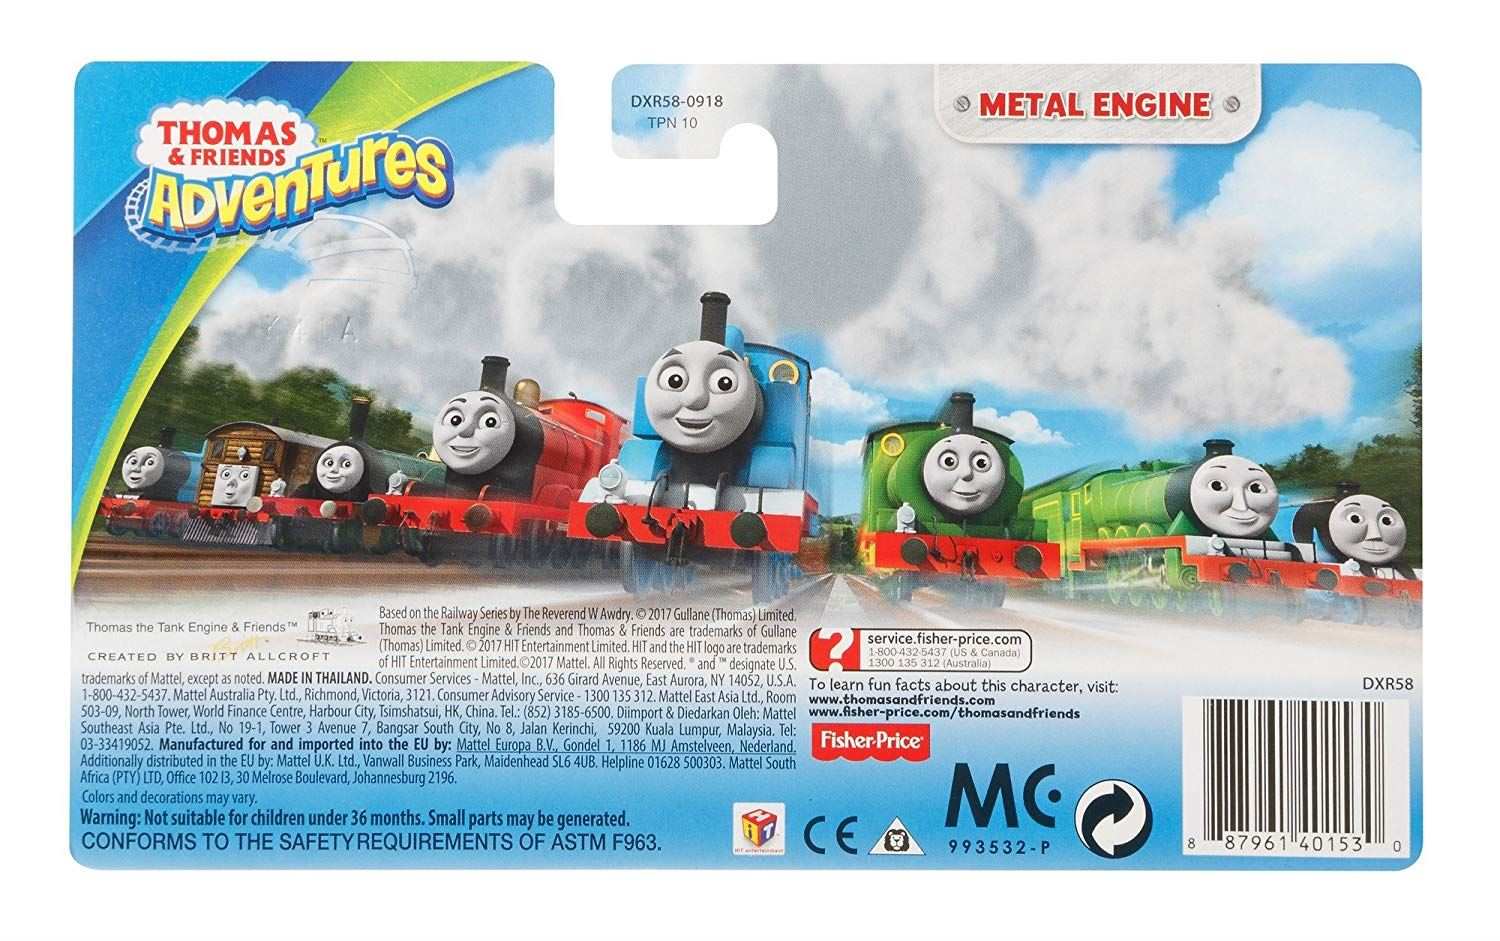 Thomas-amp-Friends-Adventures-Ferdinand-lexi-Shane-Dash-Huge-Bill-Trains Indexbild 18